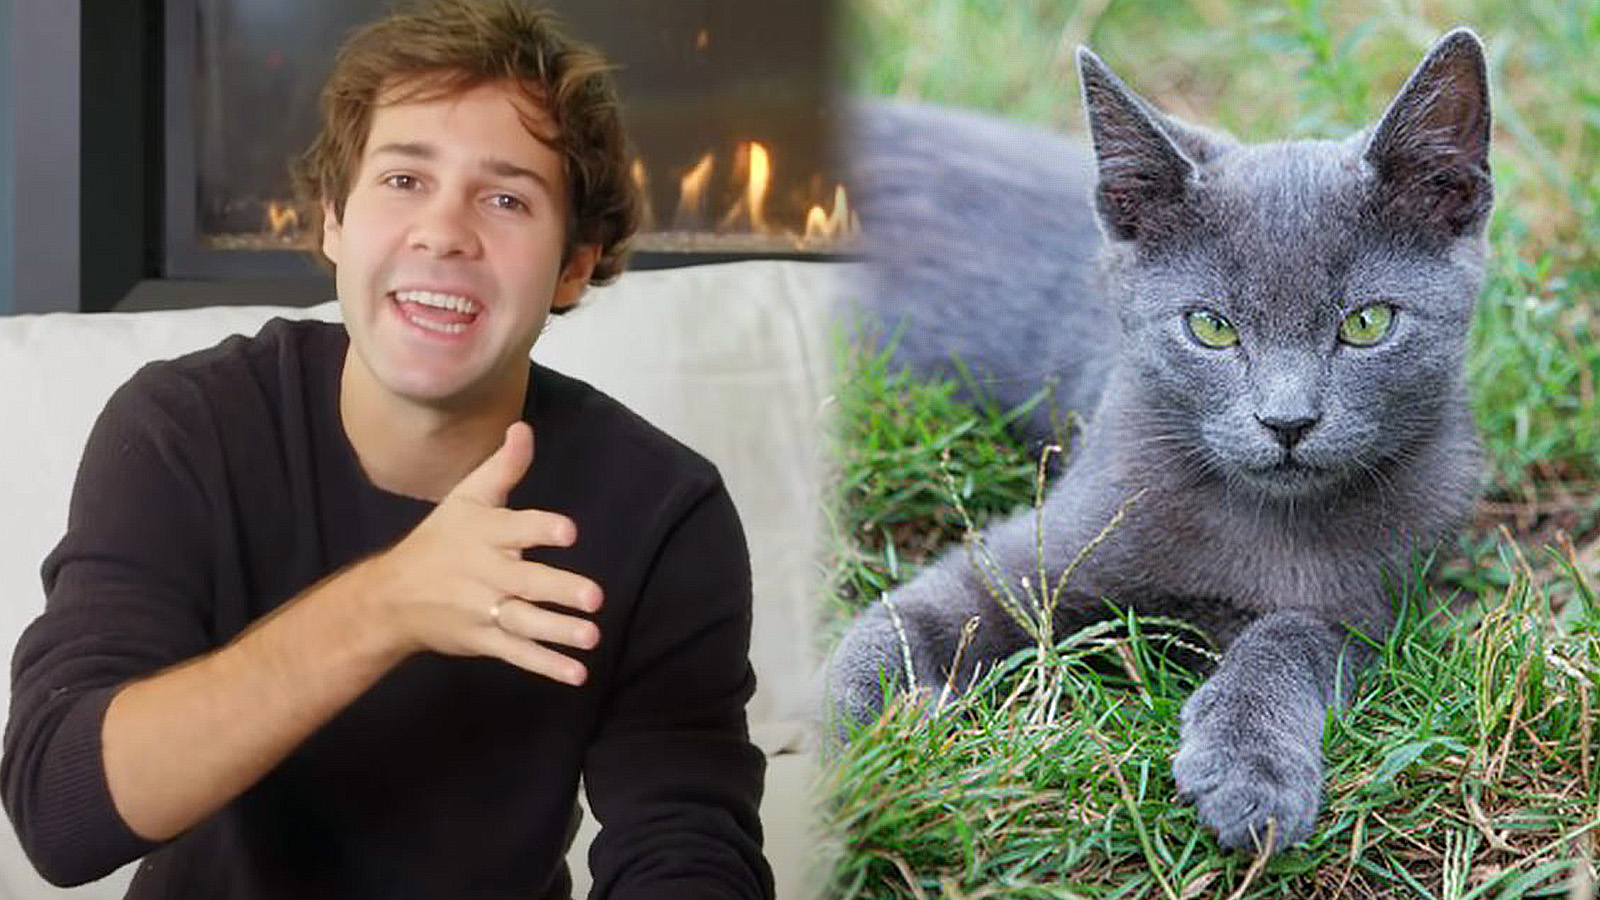 David Dobrik talks to the camera beside a photo of a Russian Blue kitten.